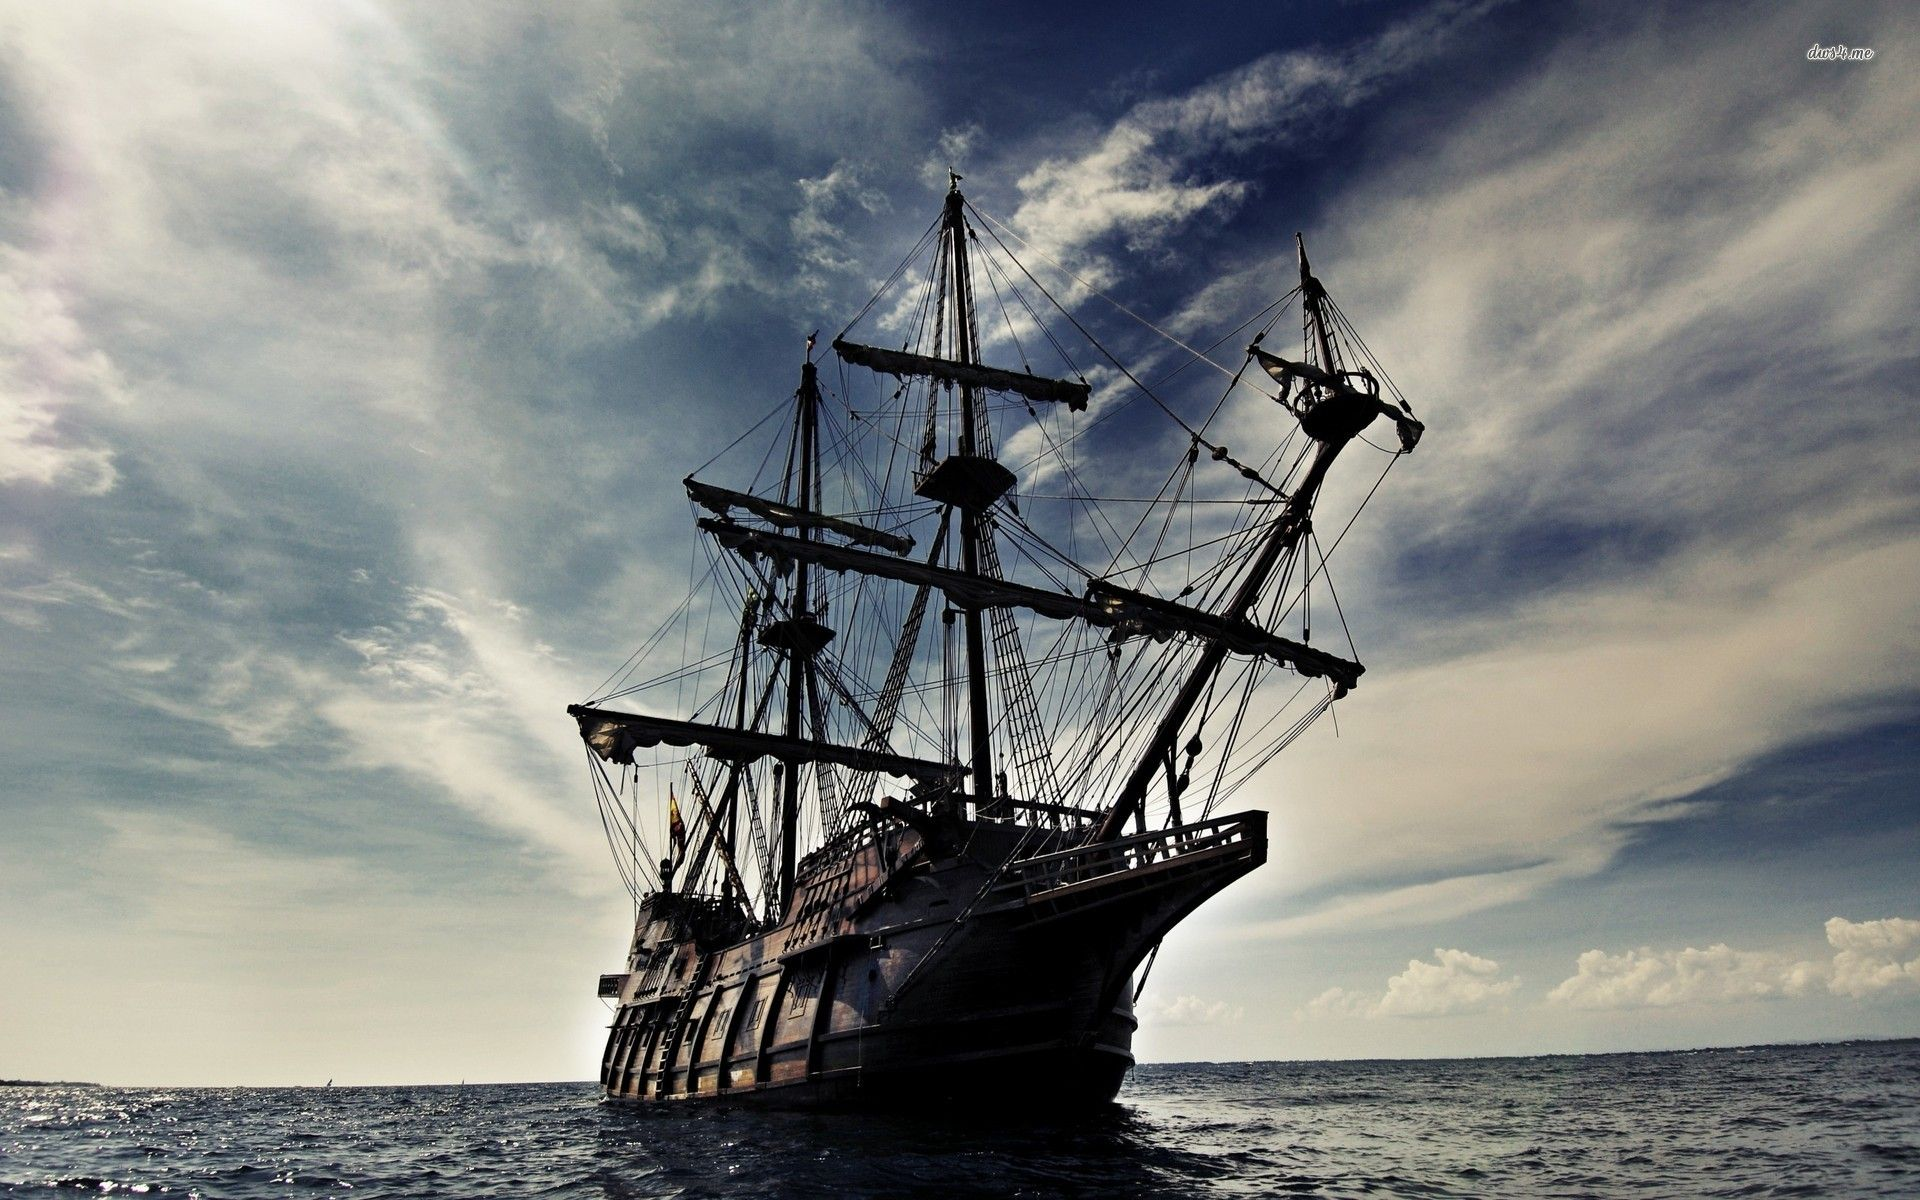 The Black Pearl Pirates Of The Caribbean Perolas Negras